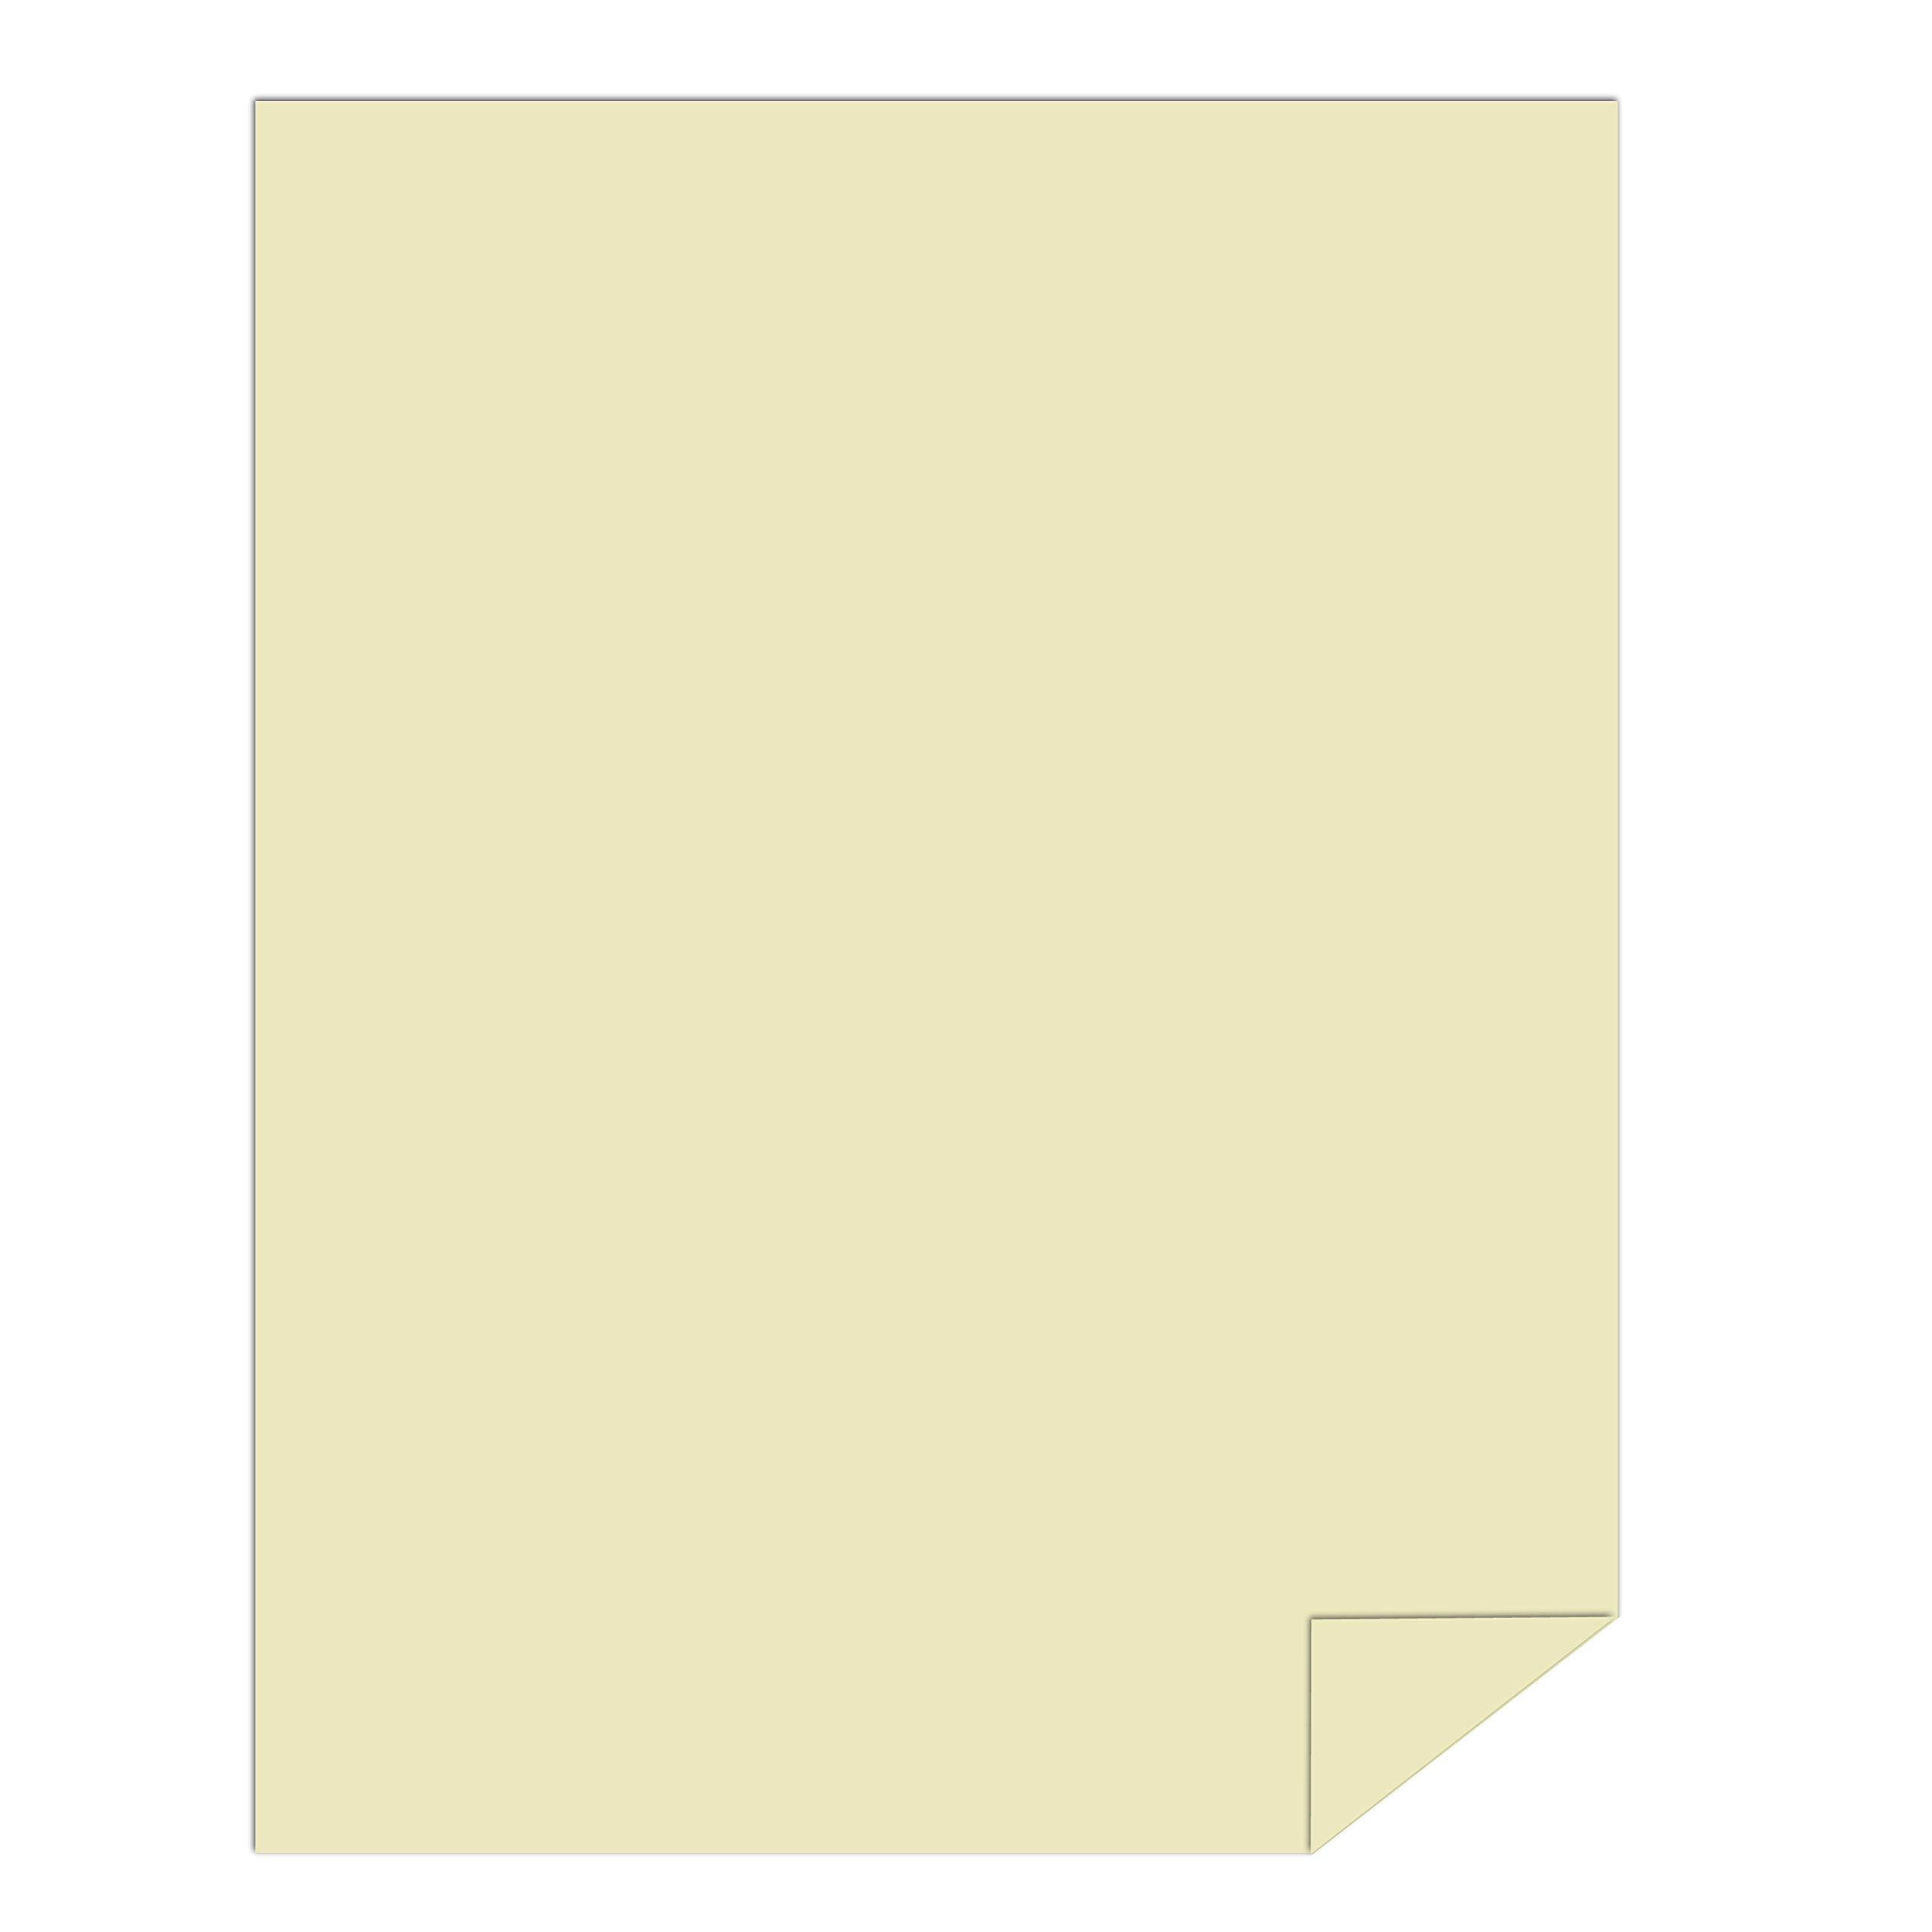 Springhill Colored Paper, Heavy Paper, Ivory Paper, 24/60lb, 89gsm, Ledger, 11 x 17, 4 Reams / 1,000 Sheets - Opaque, Thick Paper (024049C) by Springhill (Image #2)